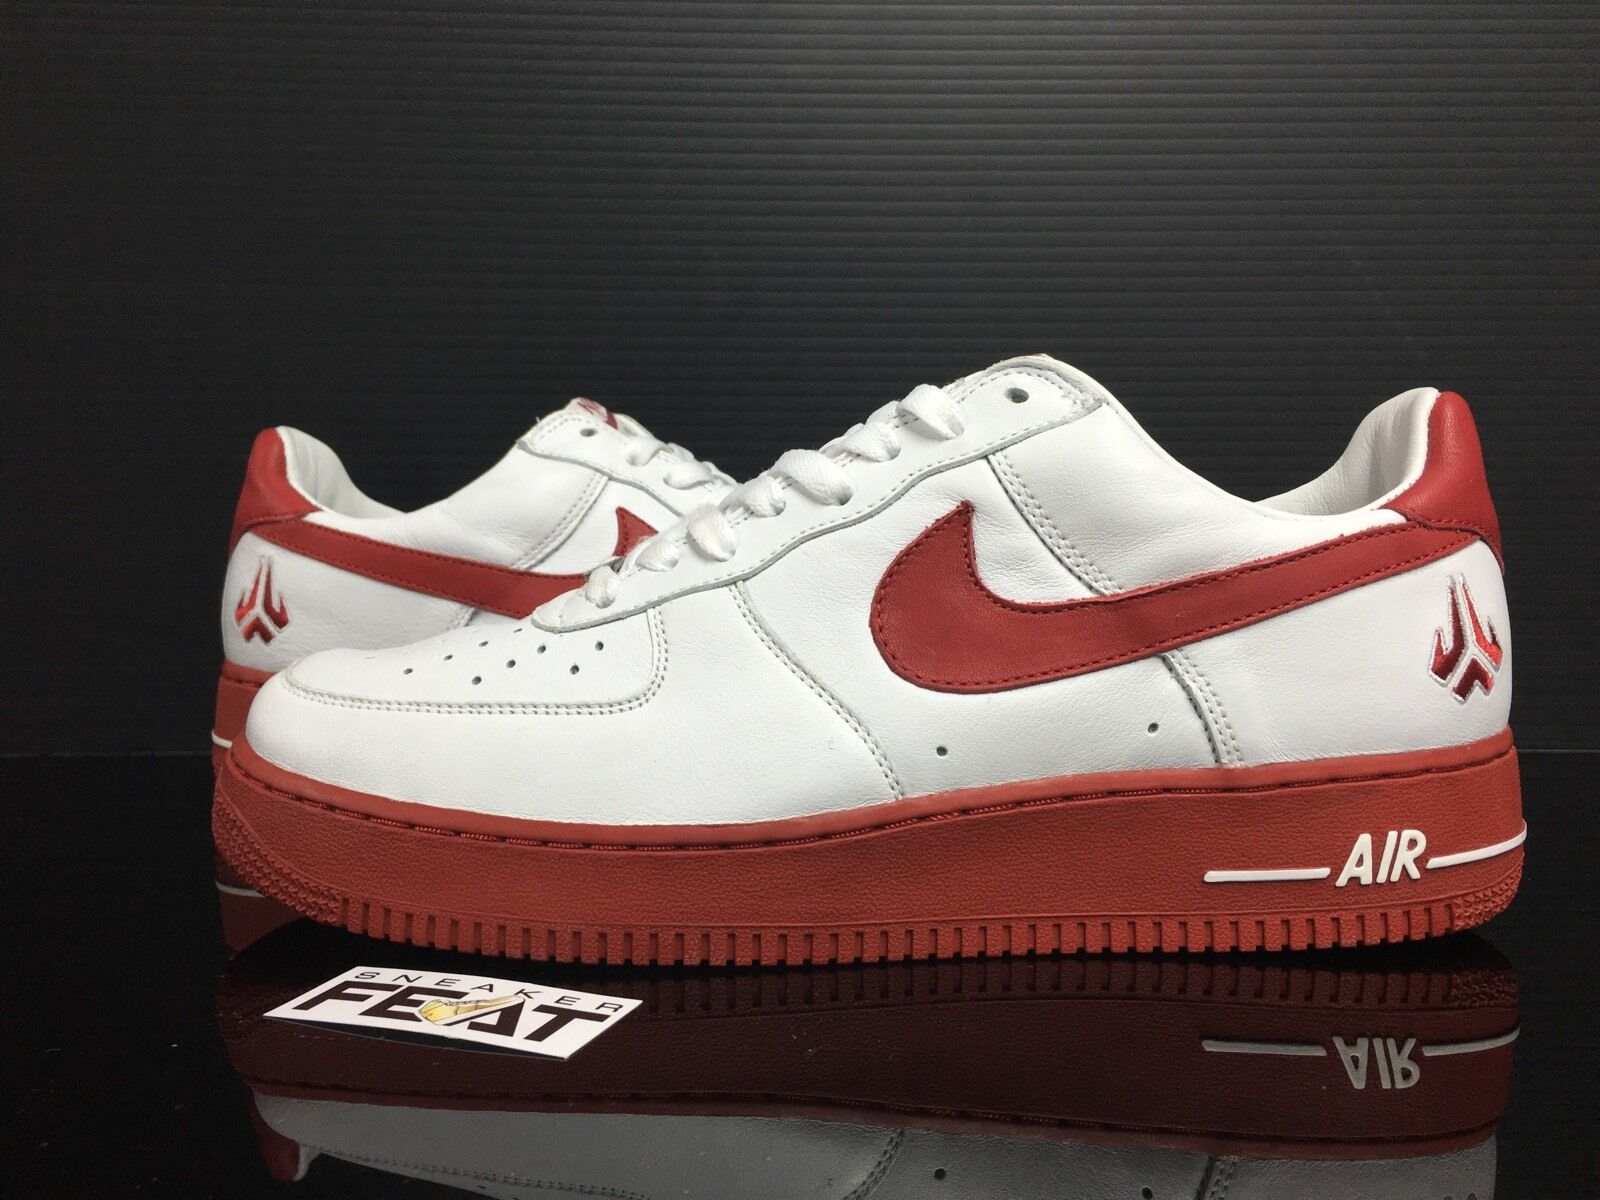 new product 4abad 89689 Nike Air Force 1 Low Kobe Bryant PE Sample White Red DS Mens Size 11 Lakers